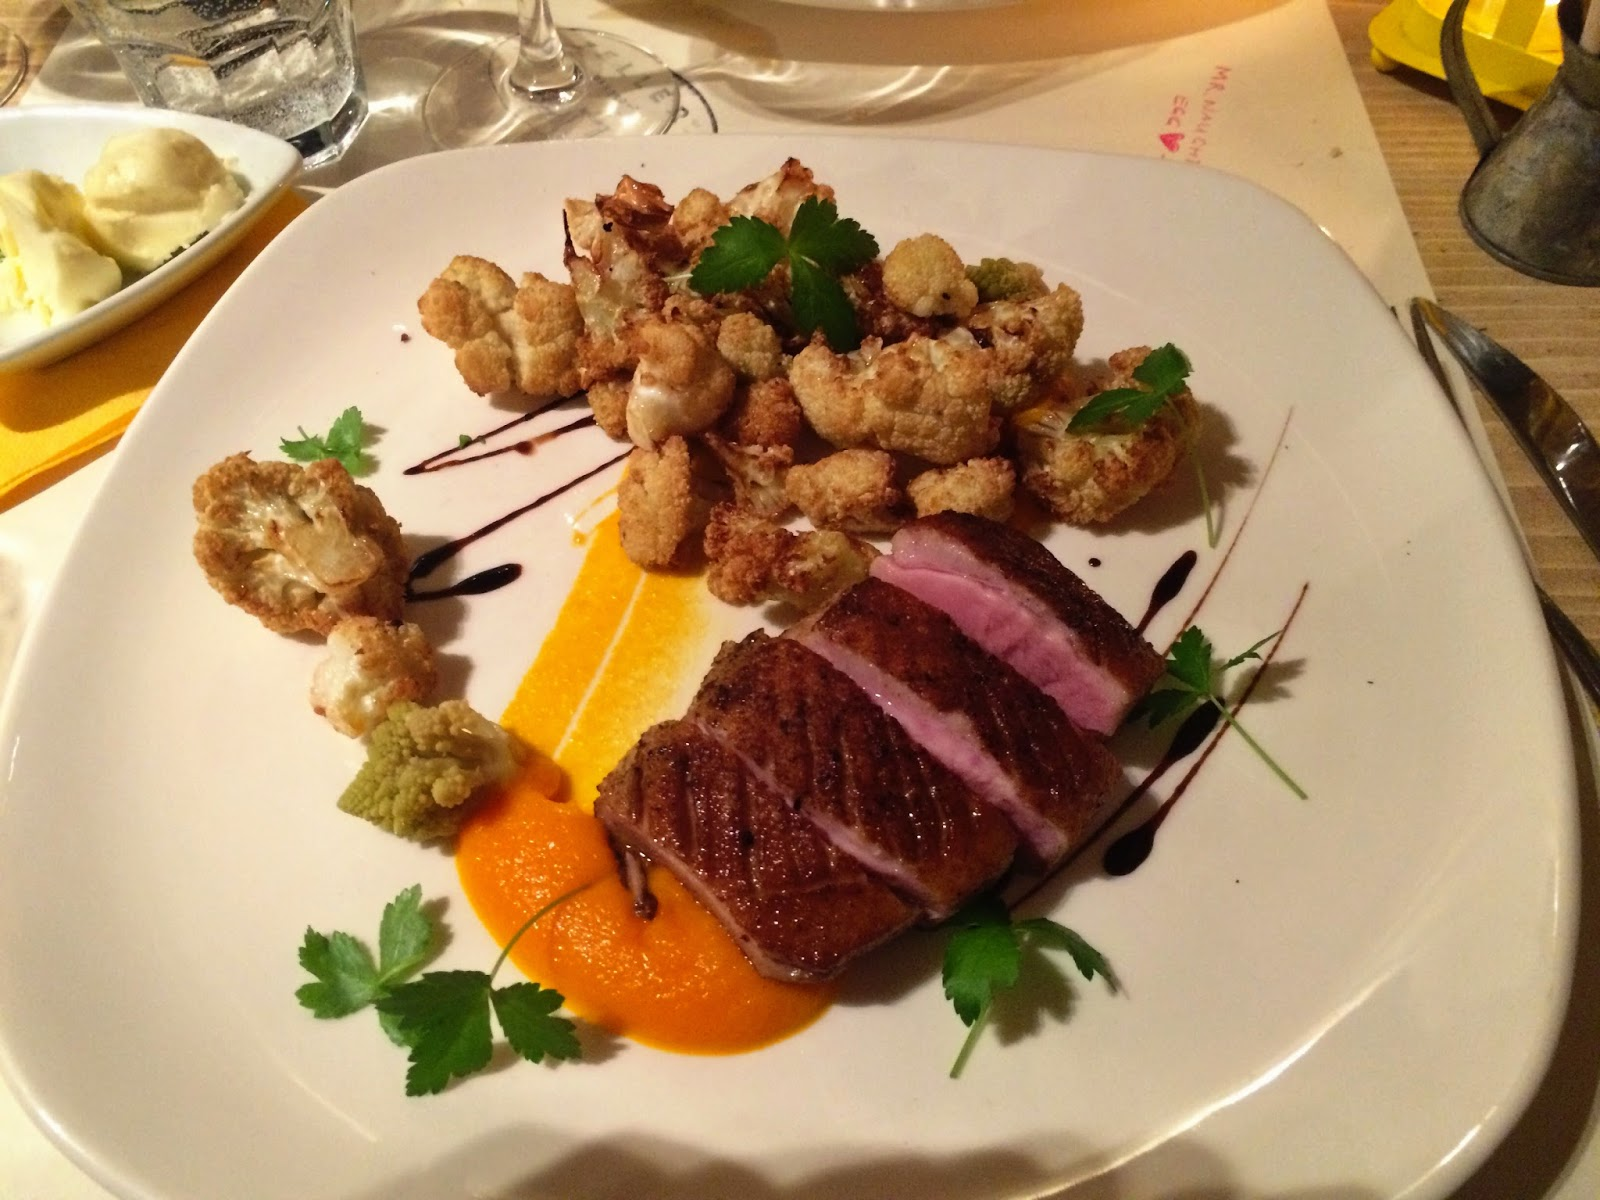 Delicious duck with cauliflower - Zeller Bistro, Budapest